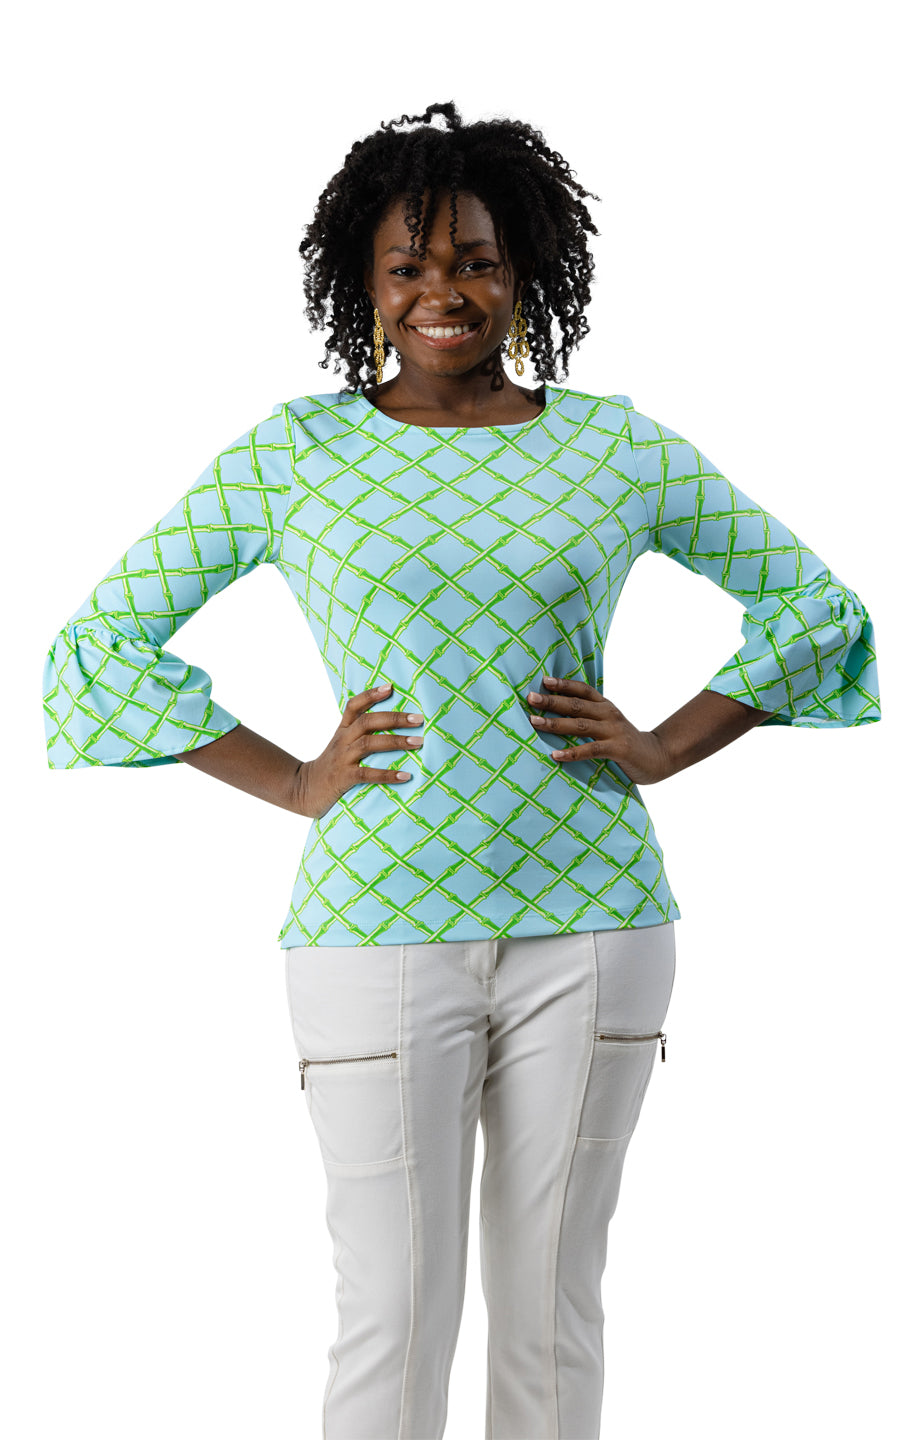 Haley Top - Turq/Green Bamboo Lattice